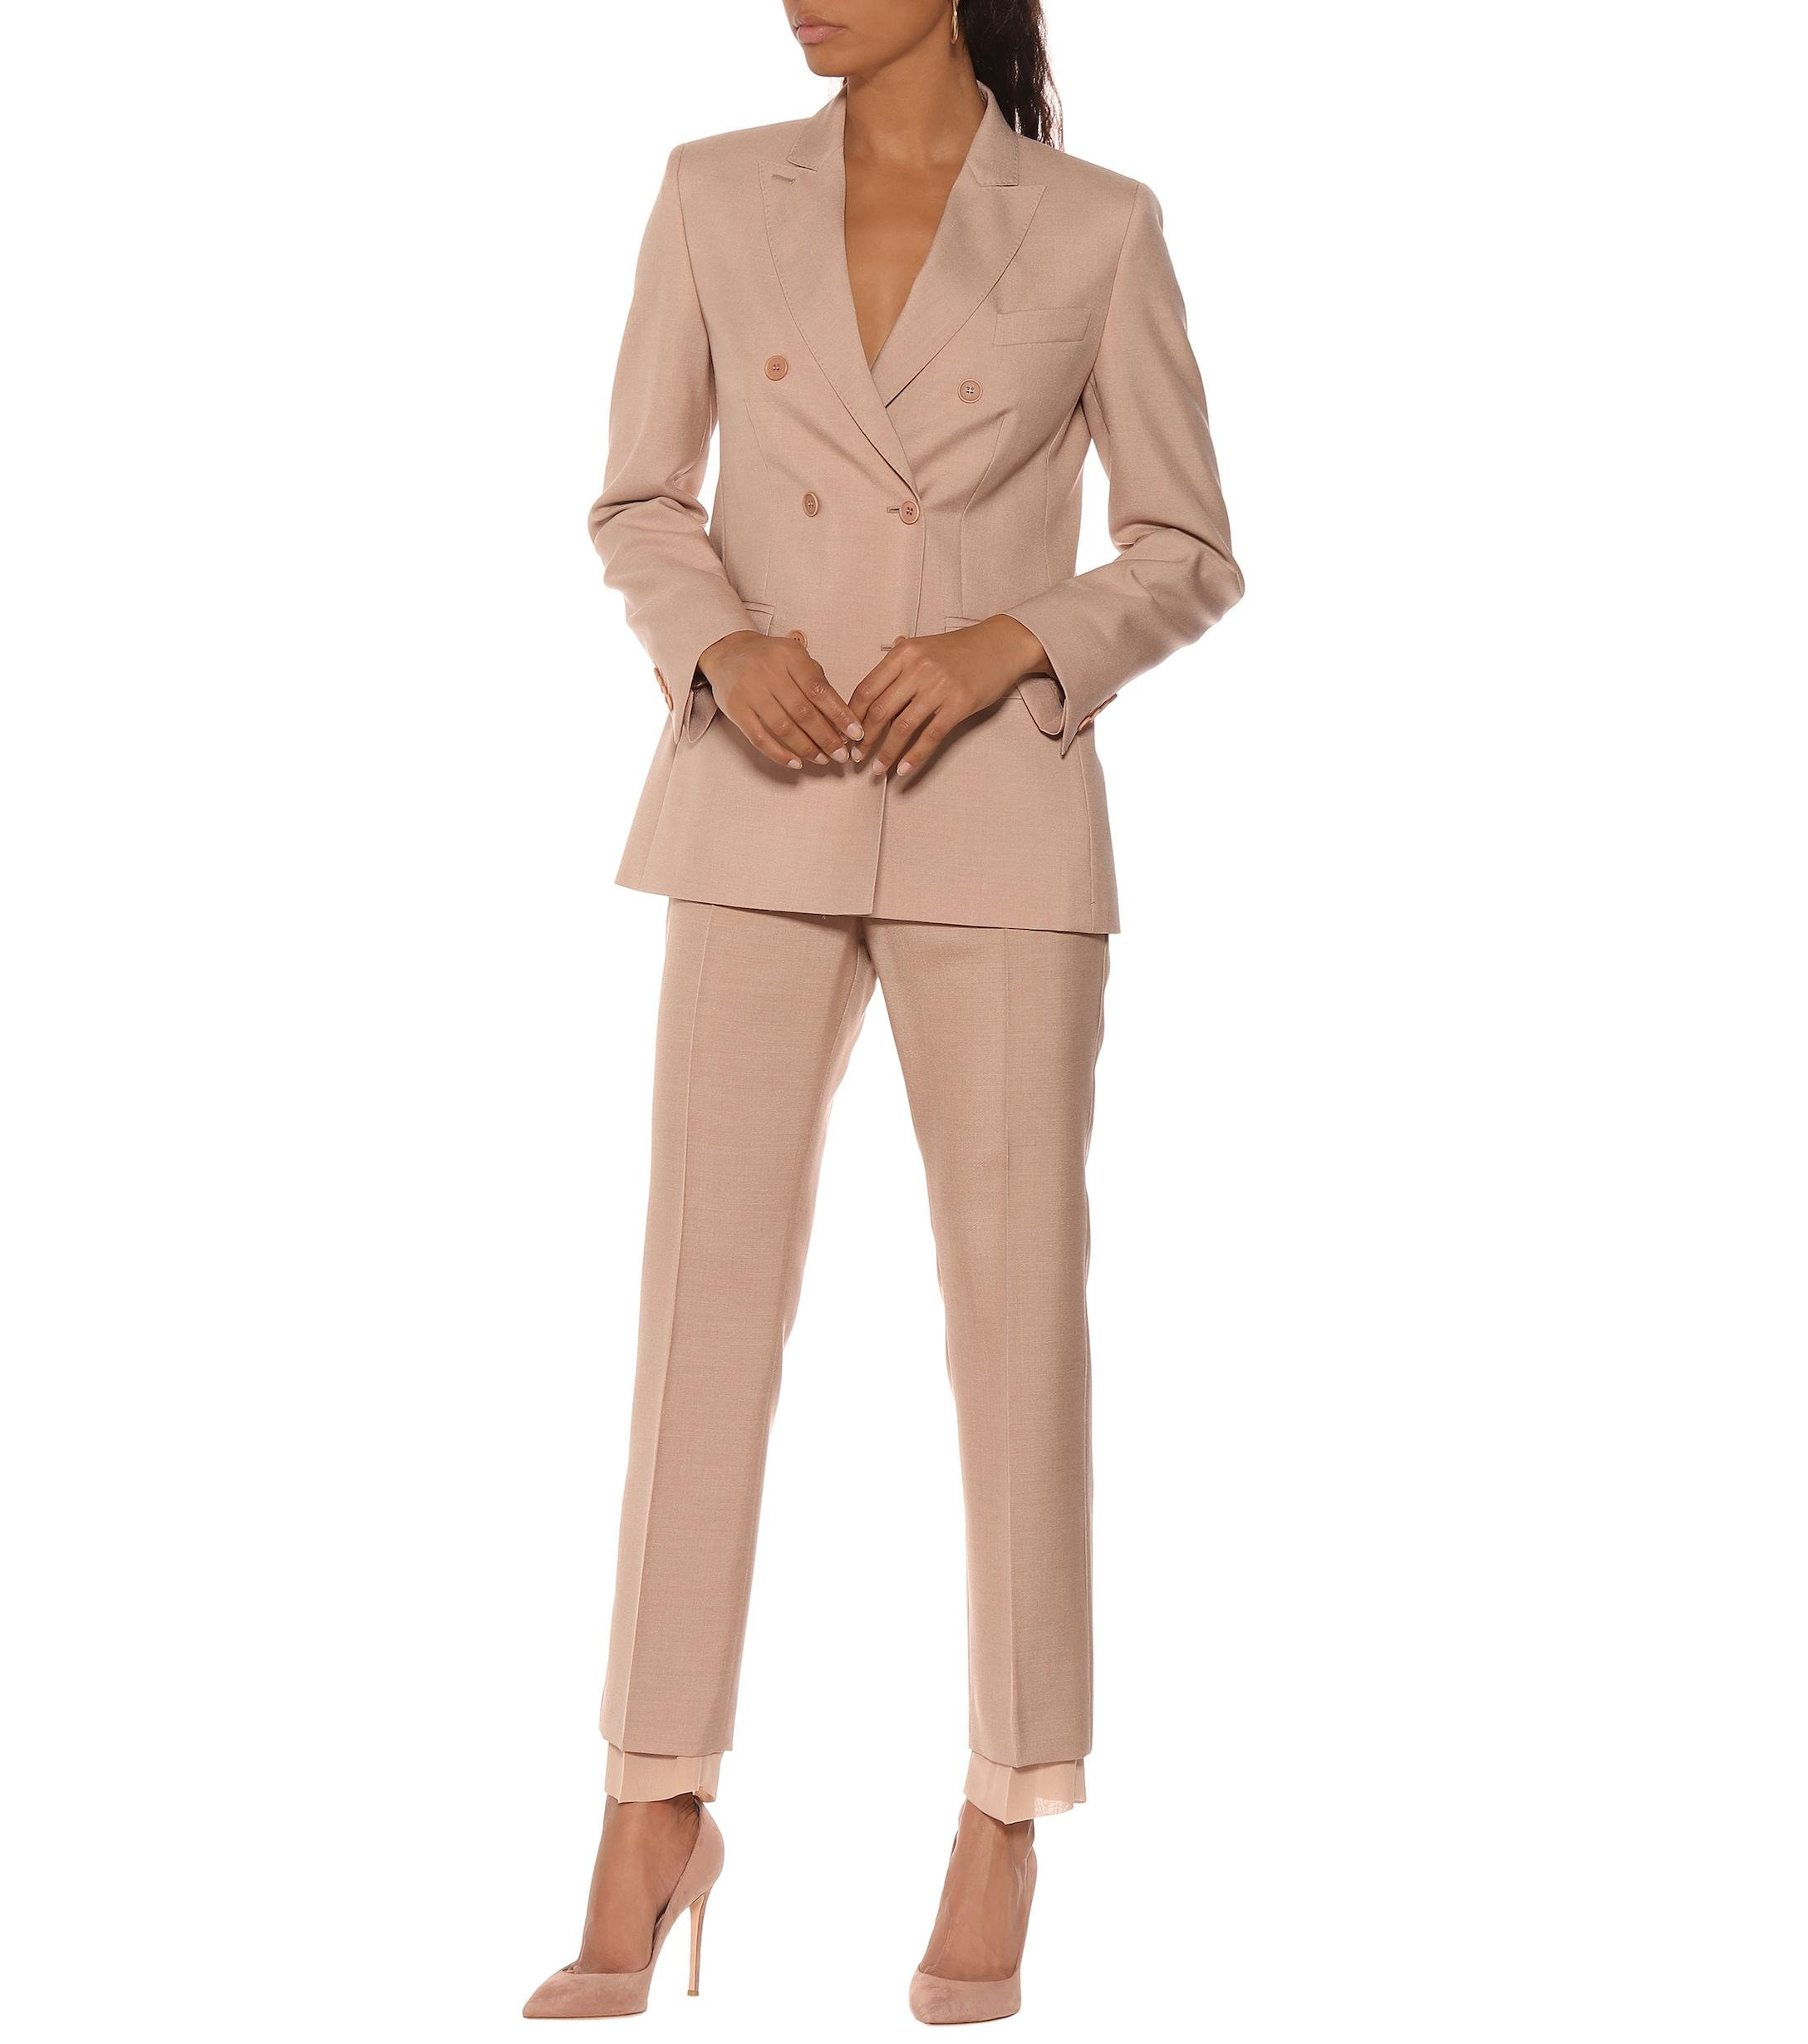 Max Mara Double-Breasted Blazer + Pants